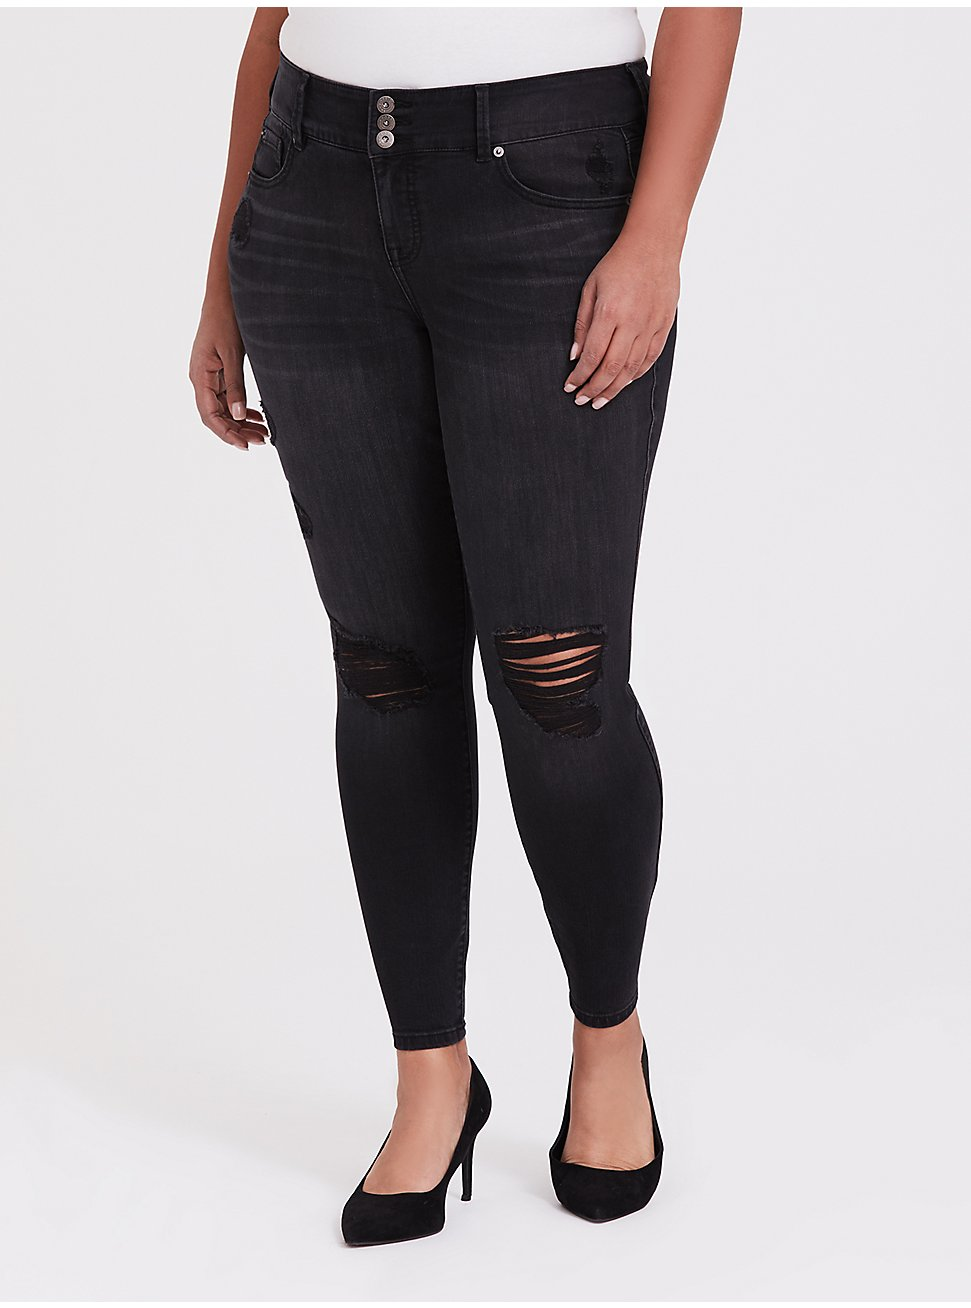 Plus Size Jegging - Premium Stretch Washed Black, COOL CAT, hi-res